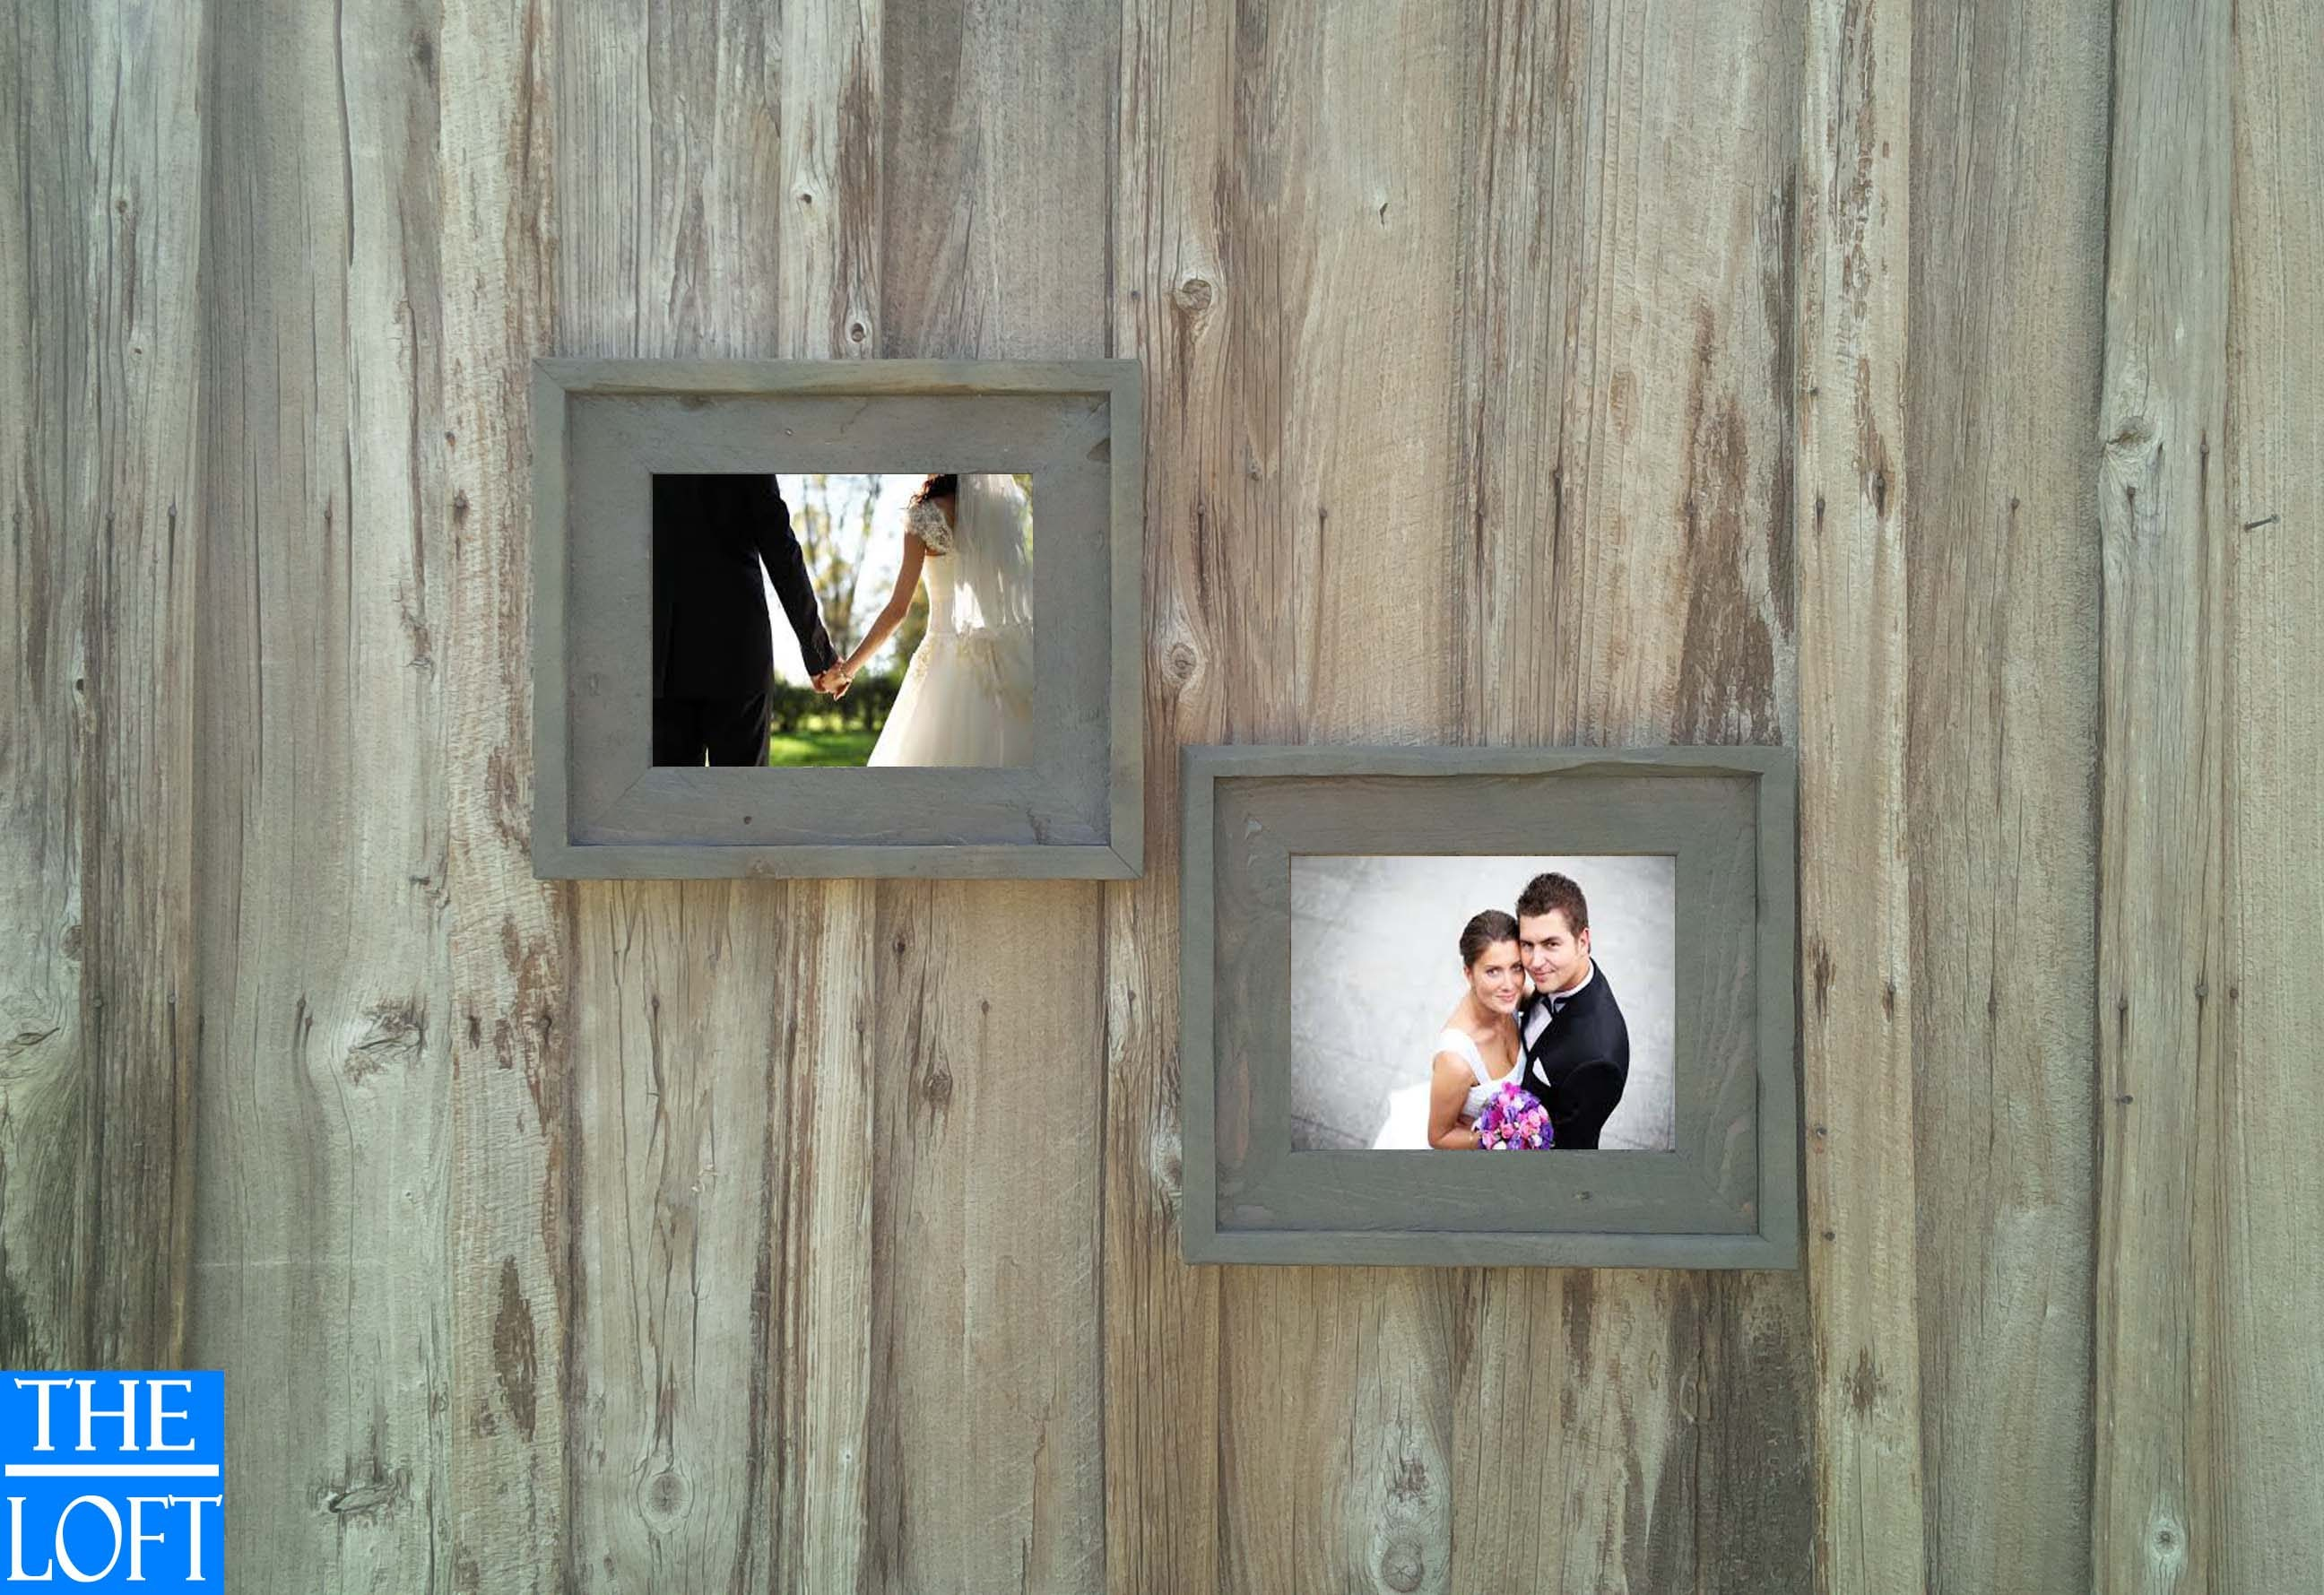 Gallery wall all finishes includes 2 11x14 frames the loft gallery wall all finishes includes 2 11x14 frames the loft signature quality handmade rustic barn wood frame jeuxipadfo Images